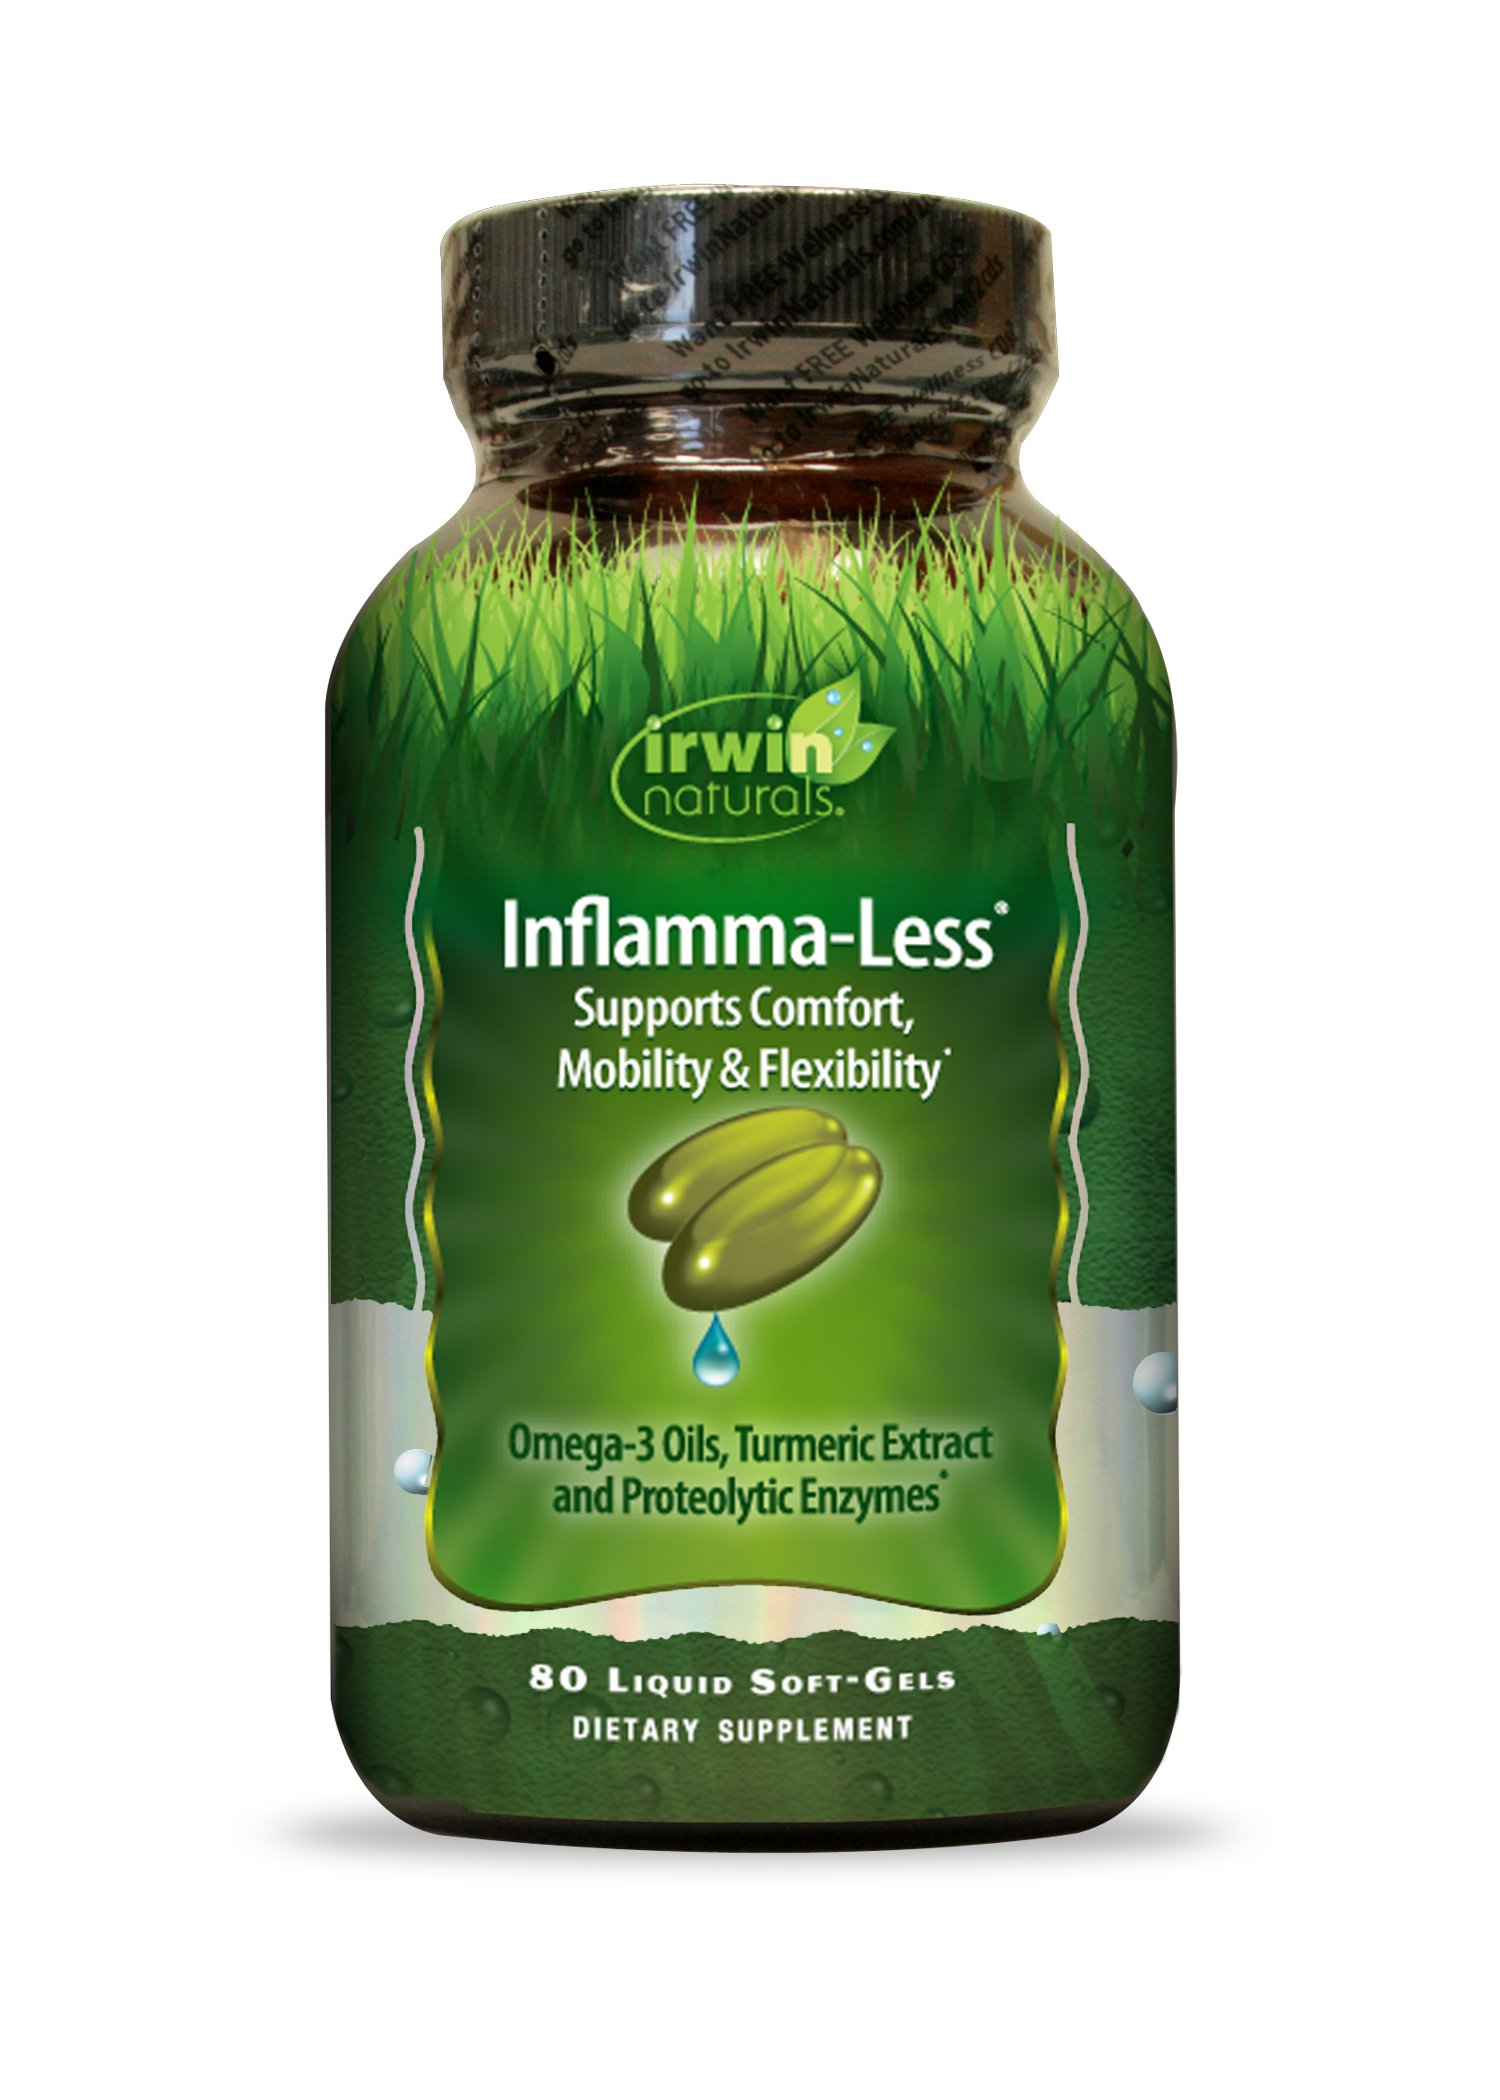 Inflamma-Less by Irwin Naturals, Supports Comfort, Mobility and Flexibility, 80 Liquid Softgels